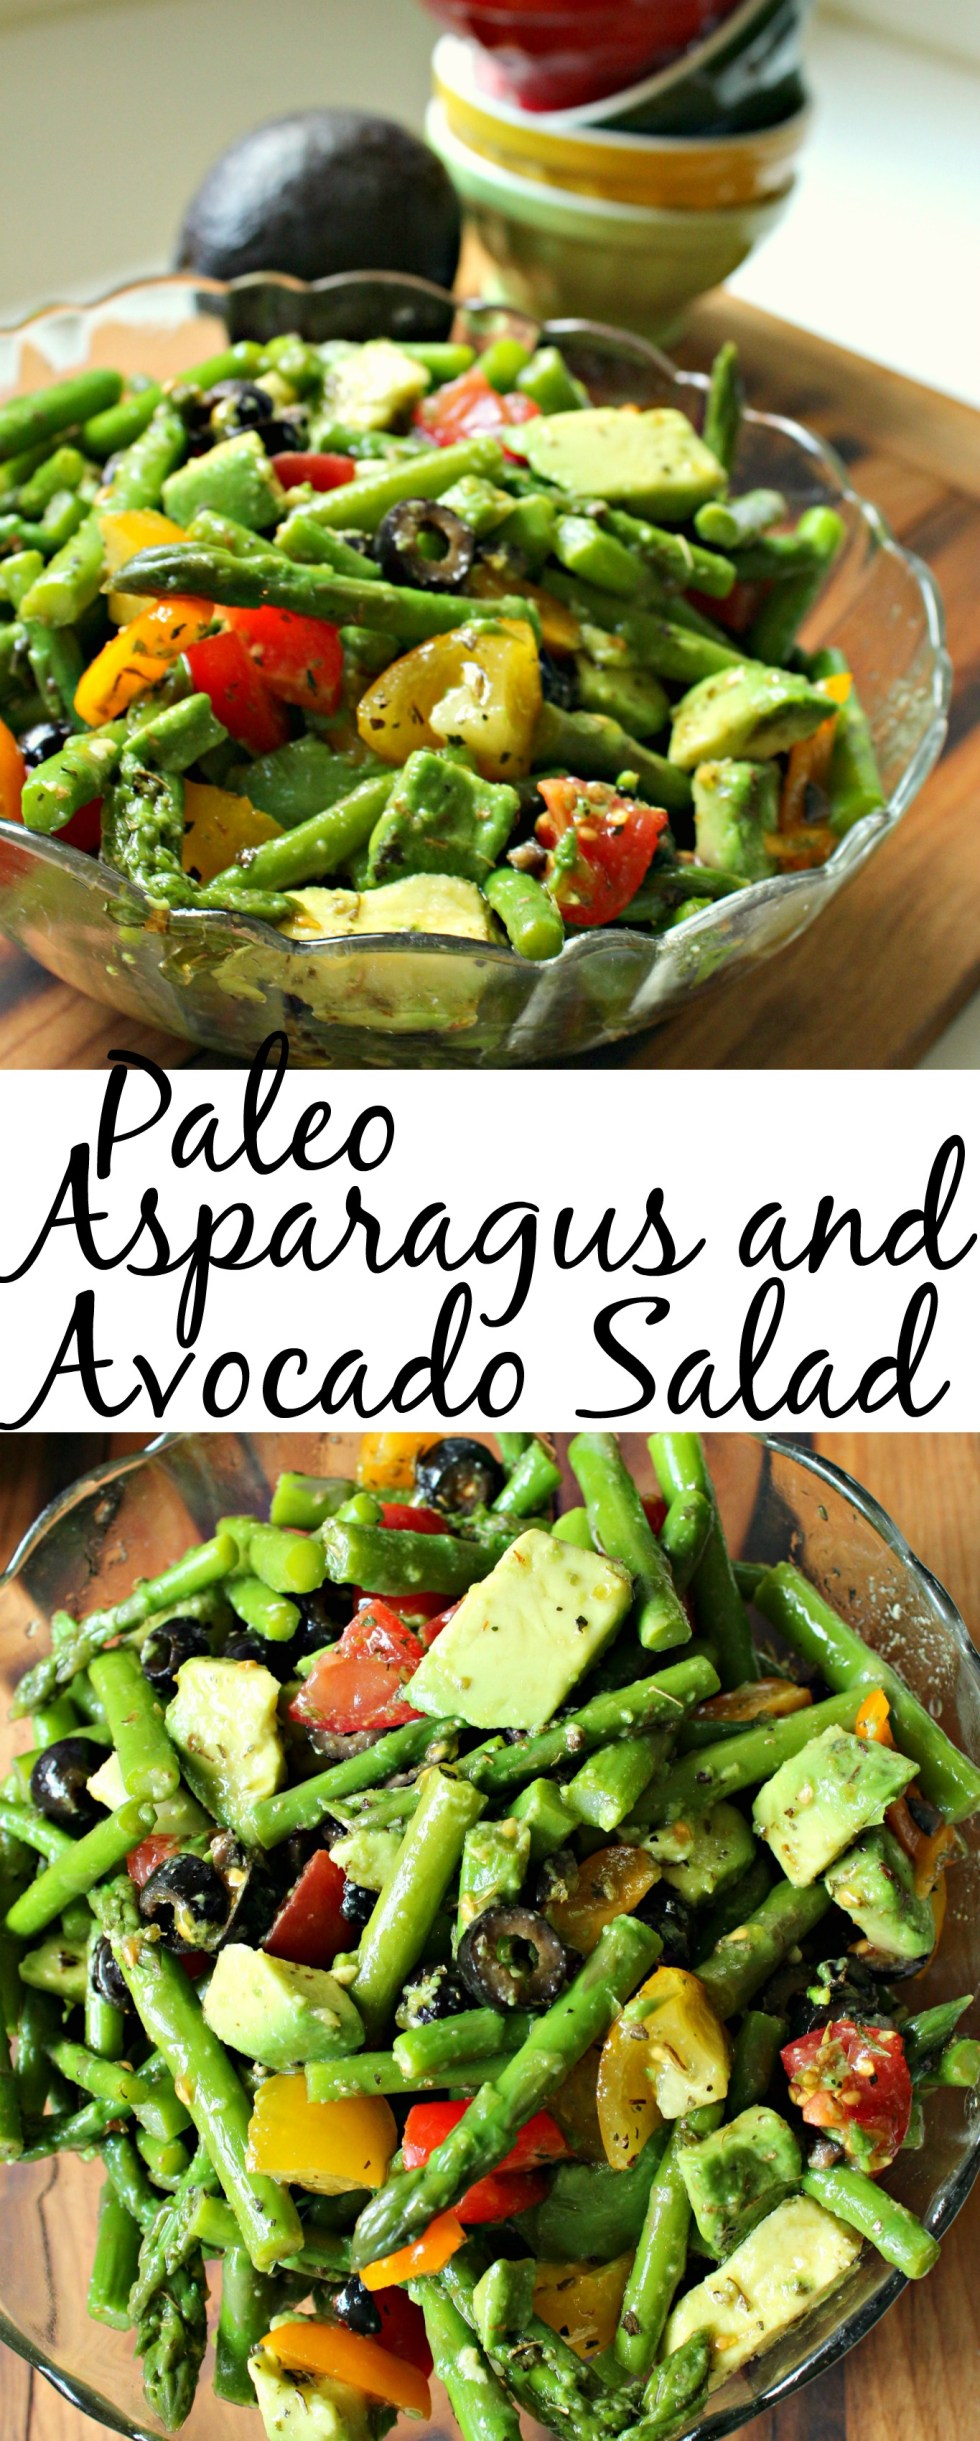 asparagus-and-avocado-salad-pin